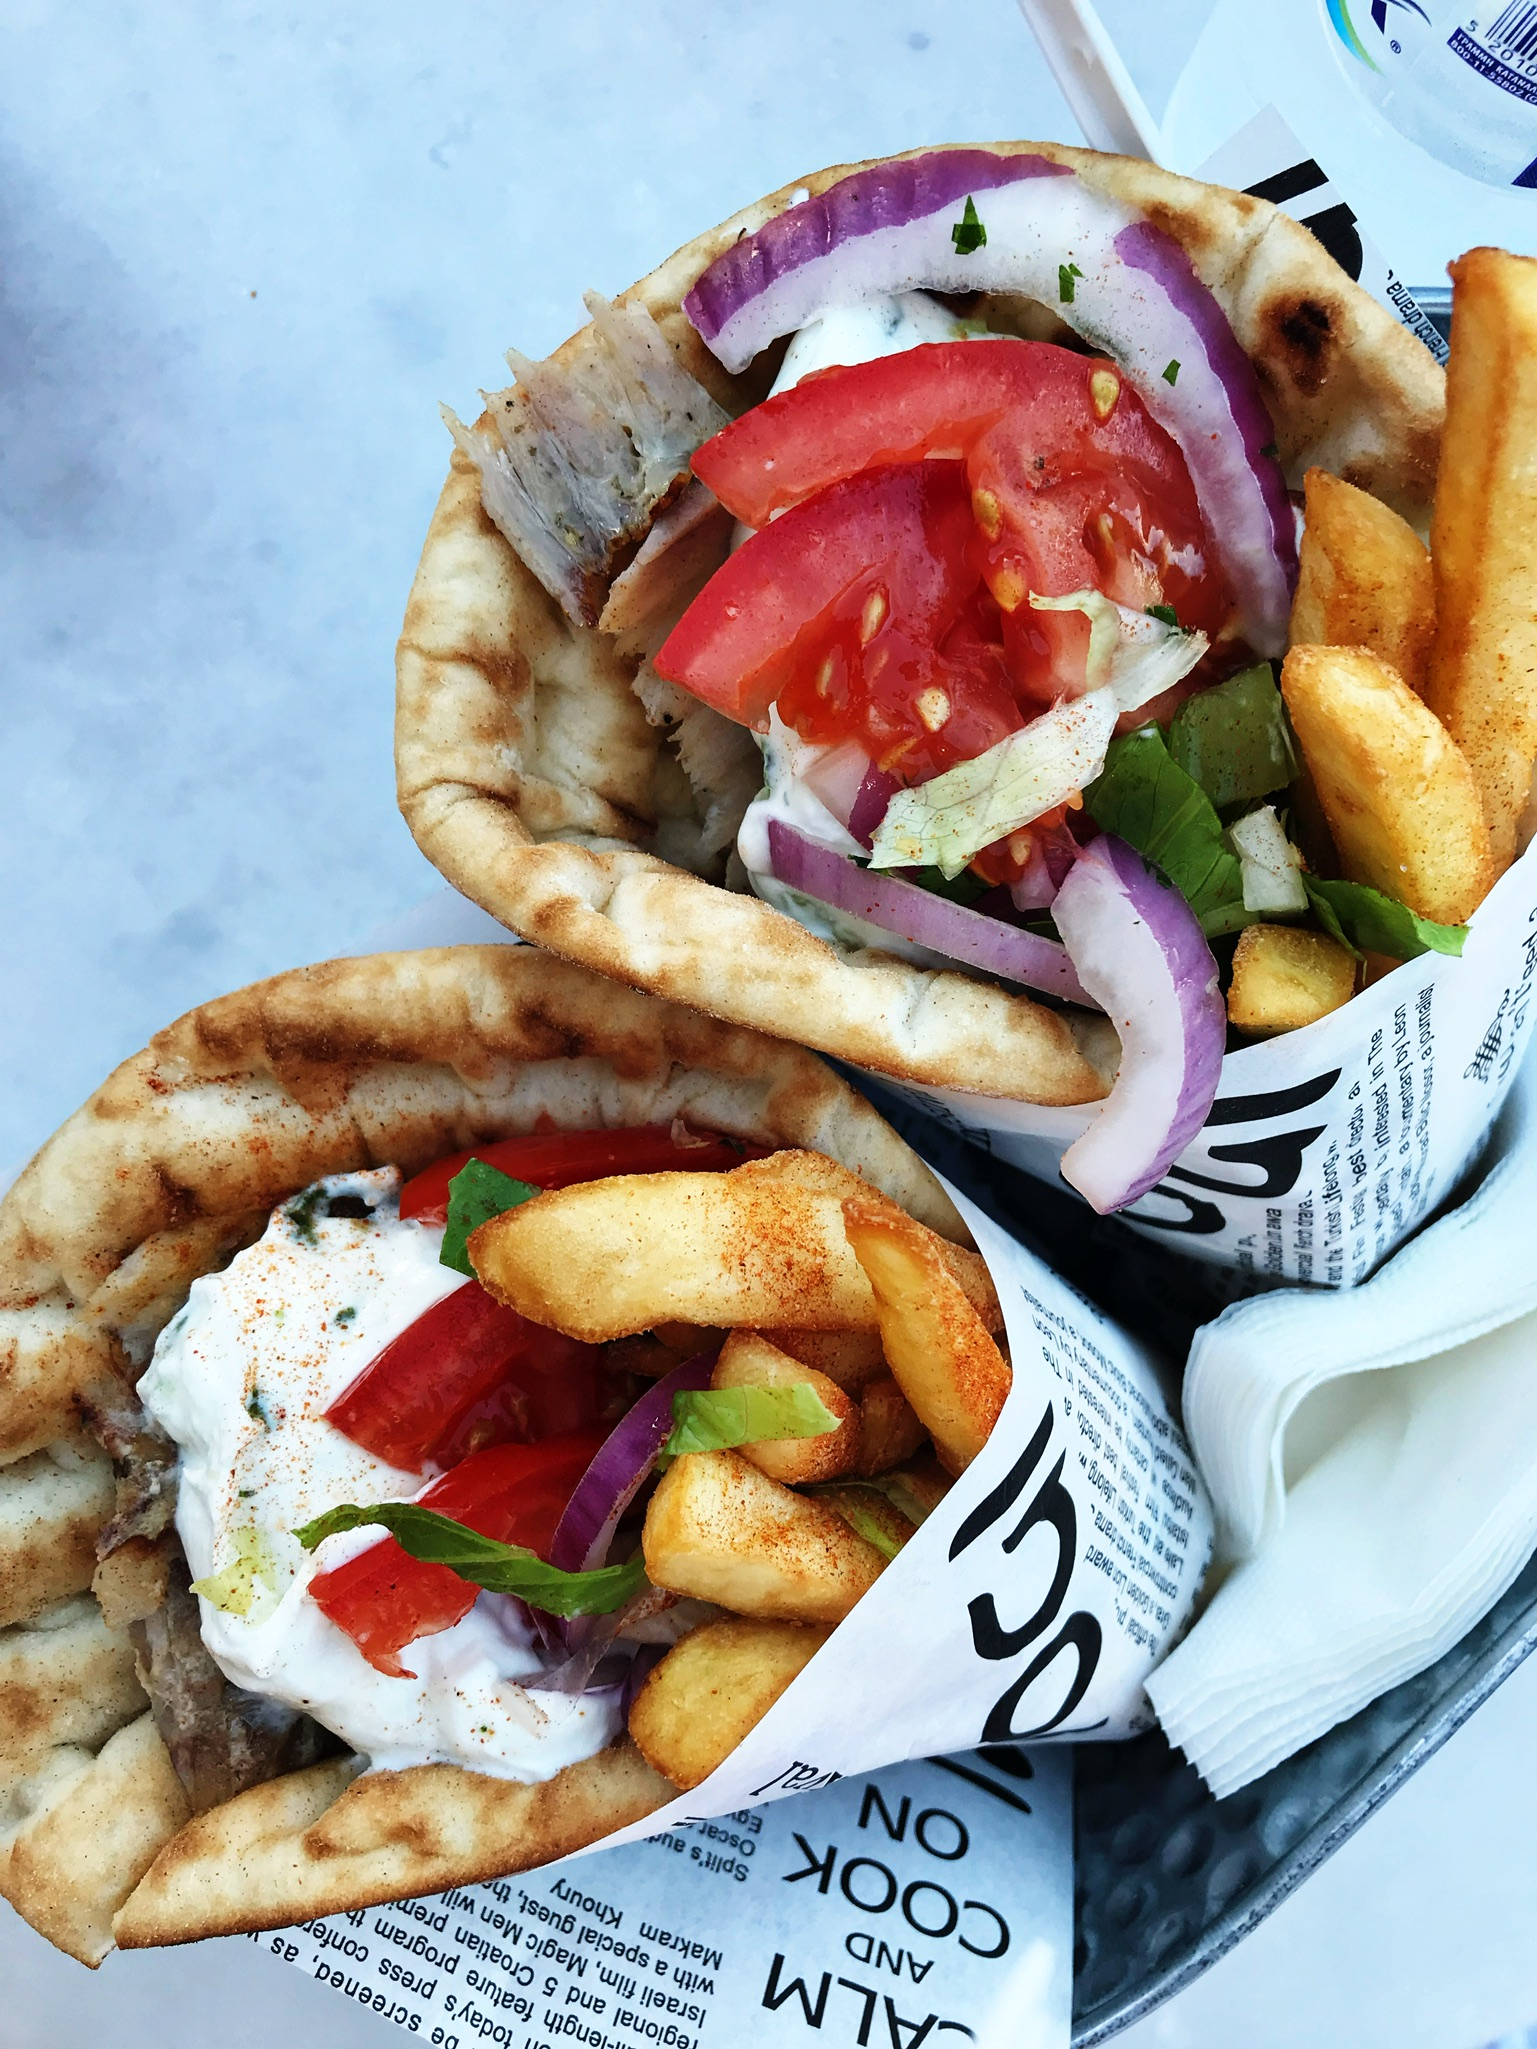 400th gyro of the trip